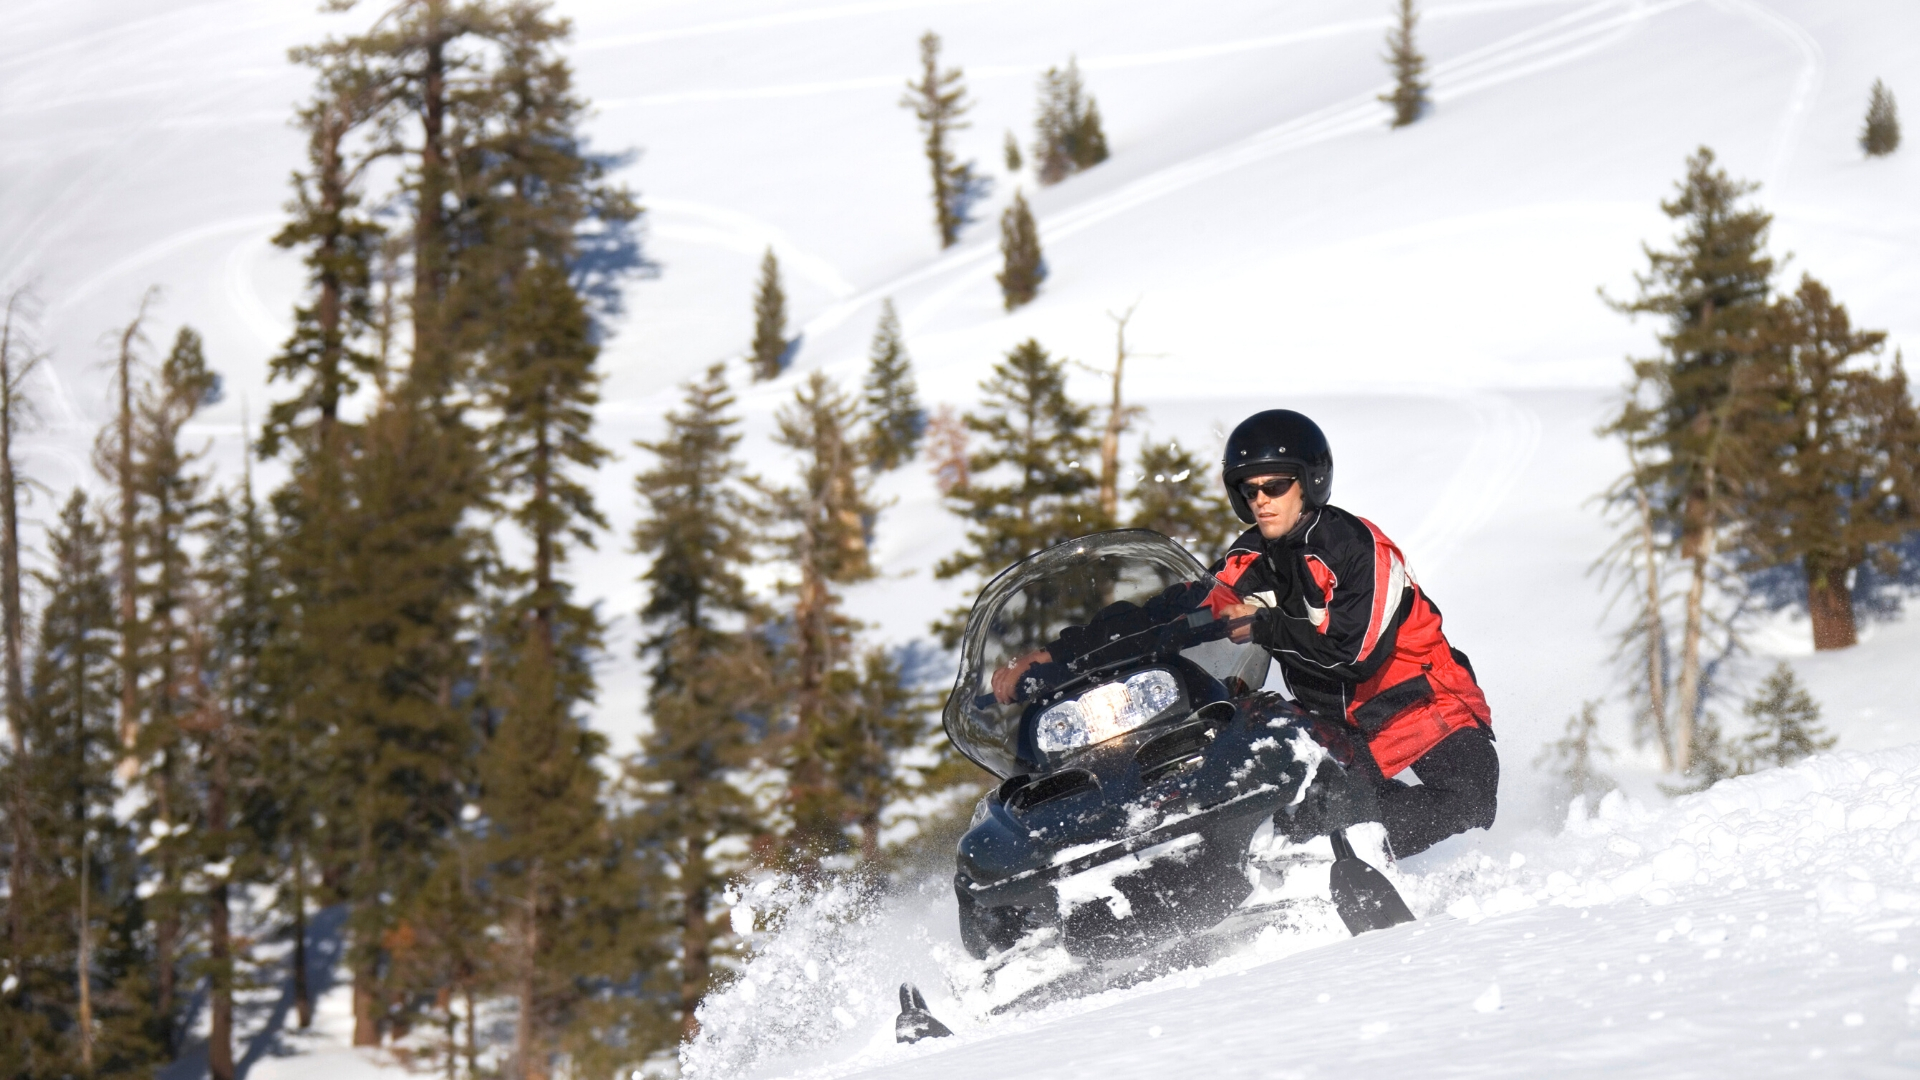 Snowmobile images